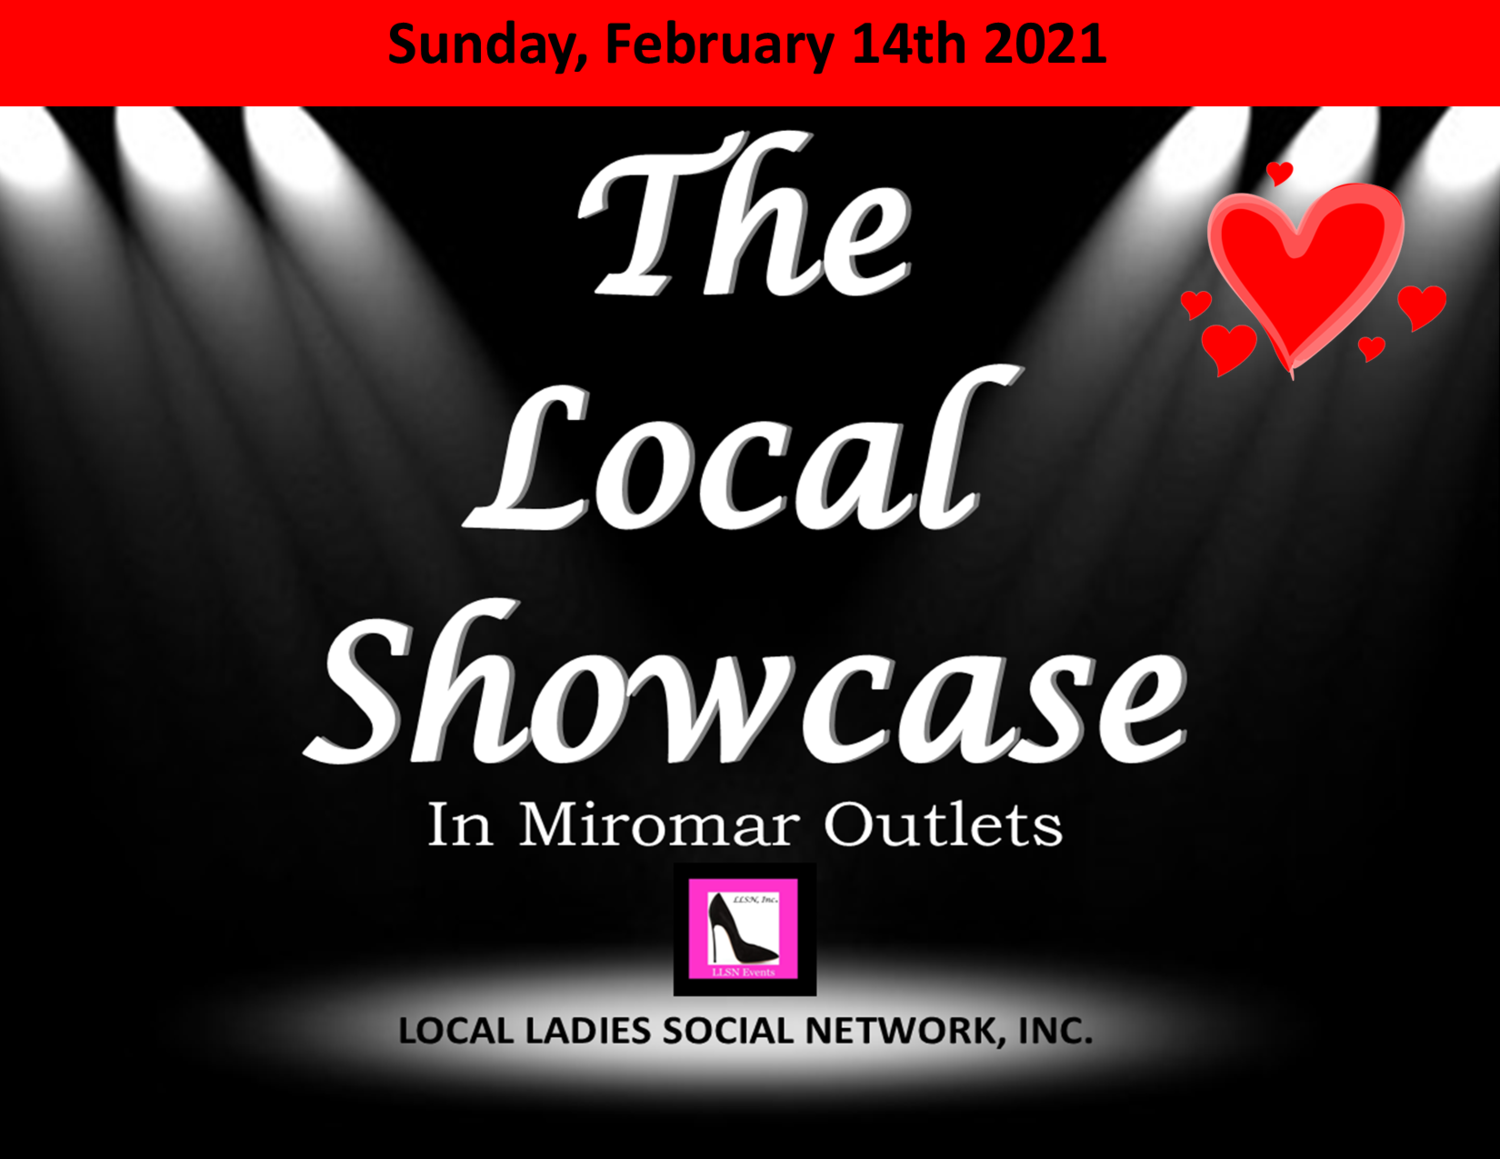 Sunday, February 14th 12pm-6pm